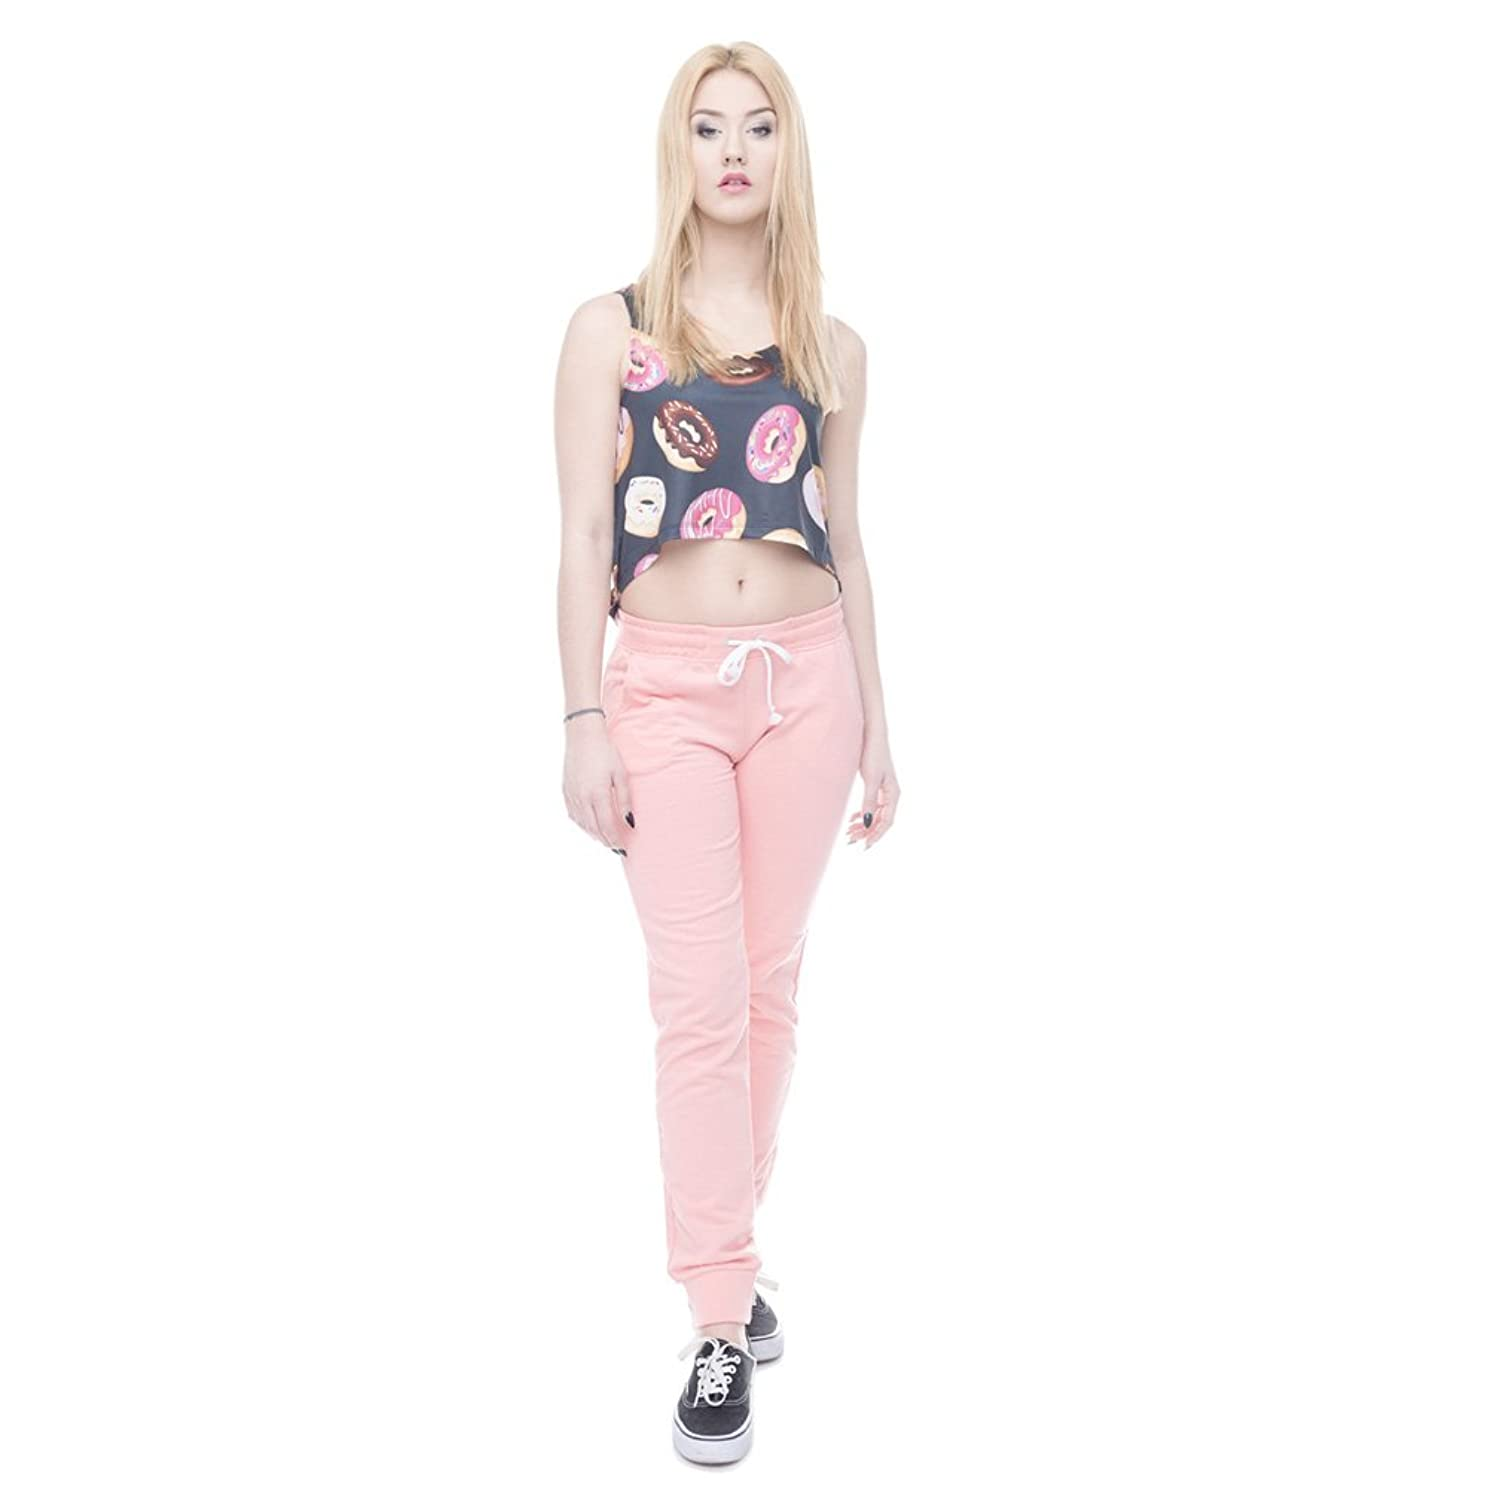 2016 Summer Cool Tank Crop Tops 3D Black Donuts Print for Women